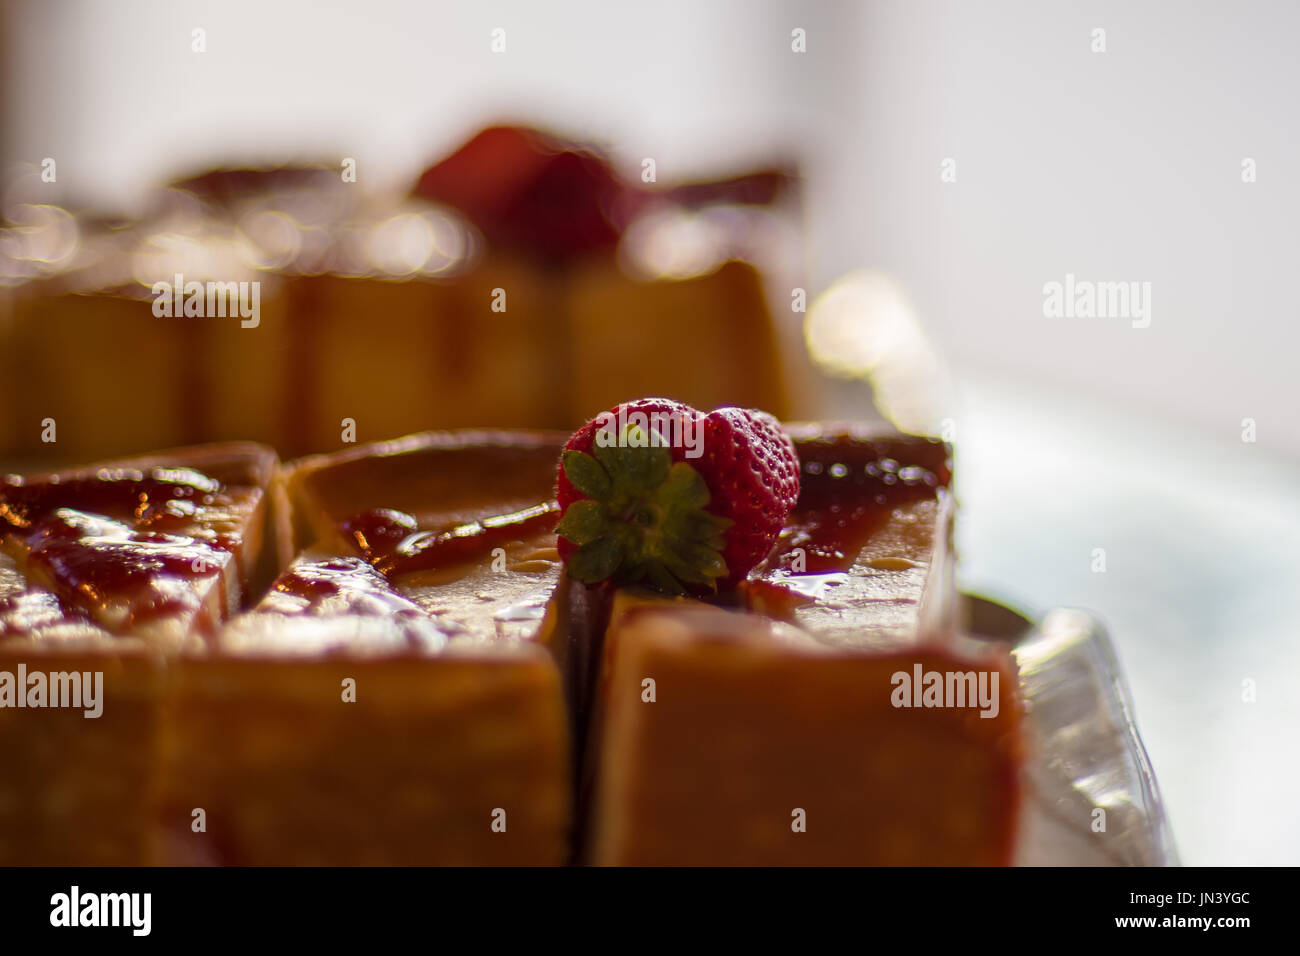 Strawberry cheesecake in close-up shot with blurry background bokeh. - Stock Image